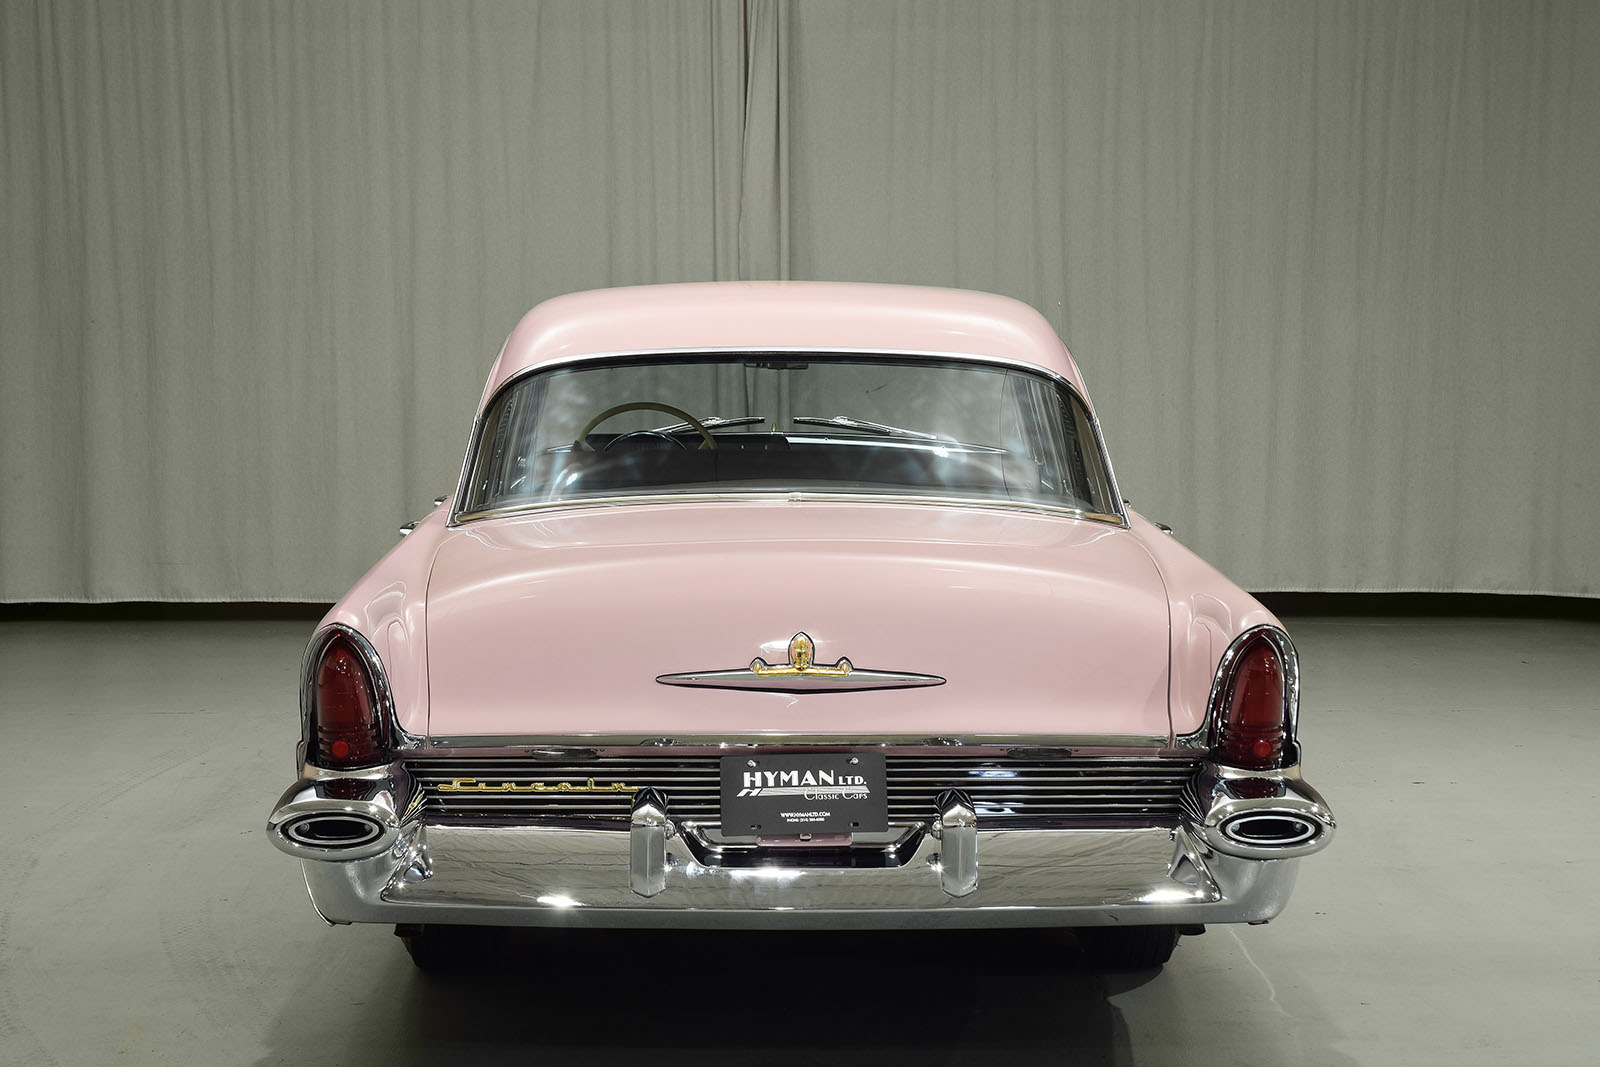 Lincoln Motor Company >> 1956 Lincoln Premiere Sedan | Hyman Ltd.